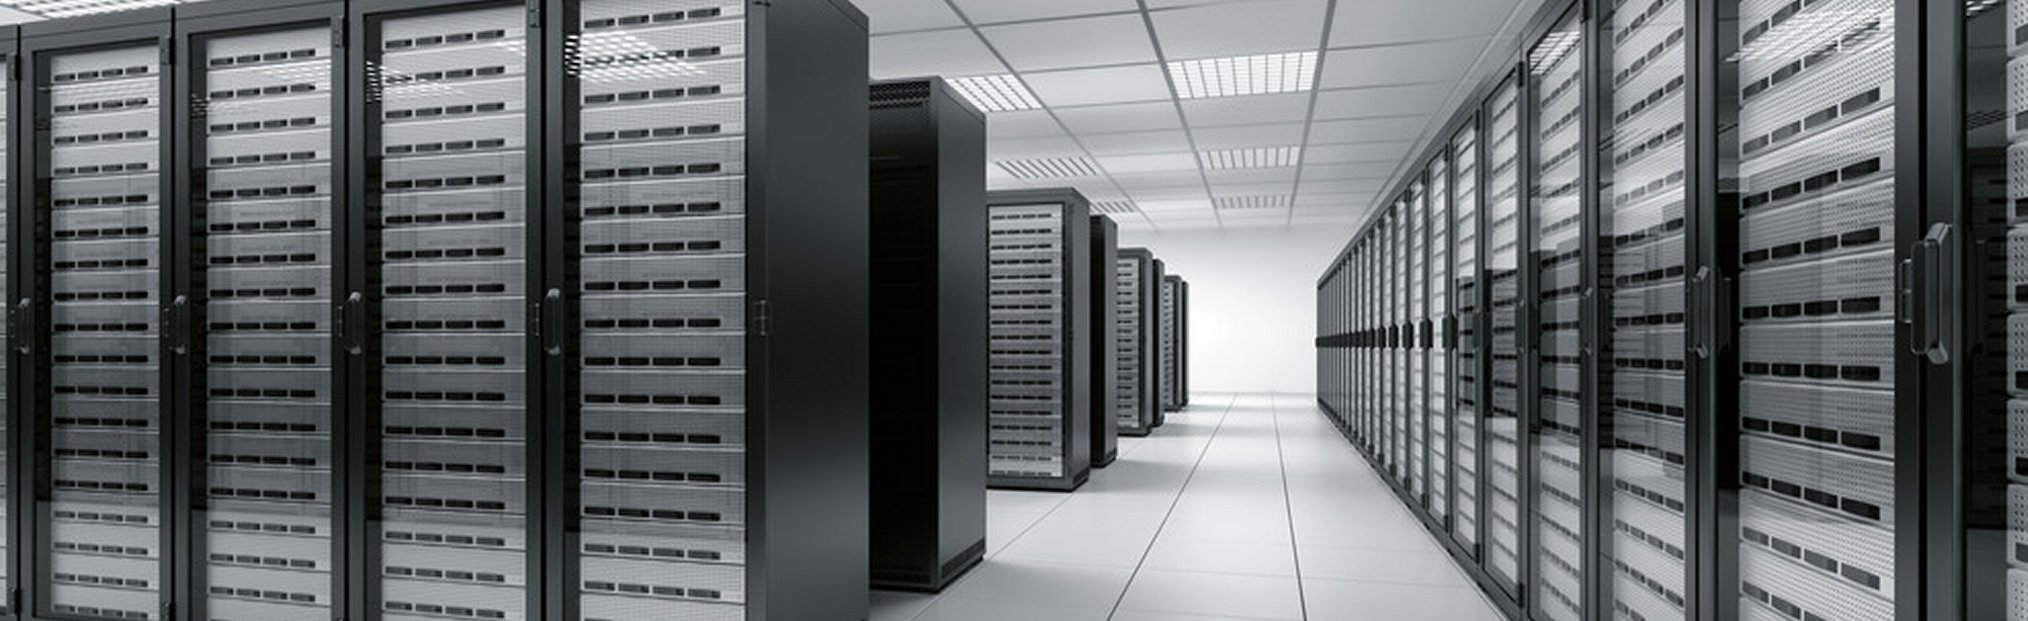 Cloud Servers and Virtualization